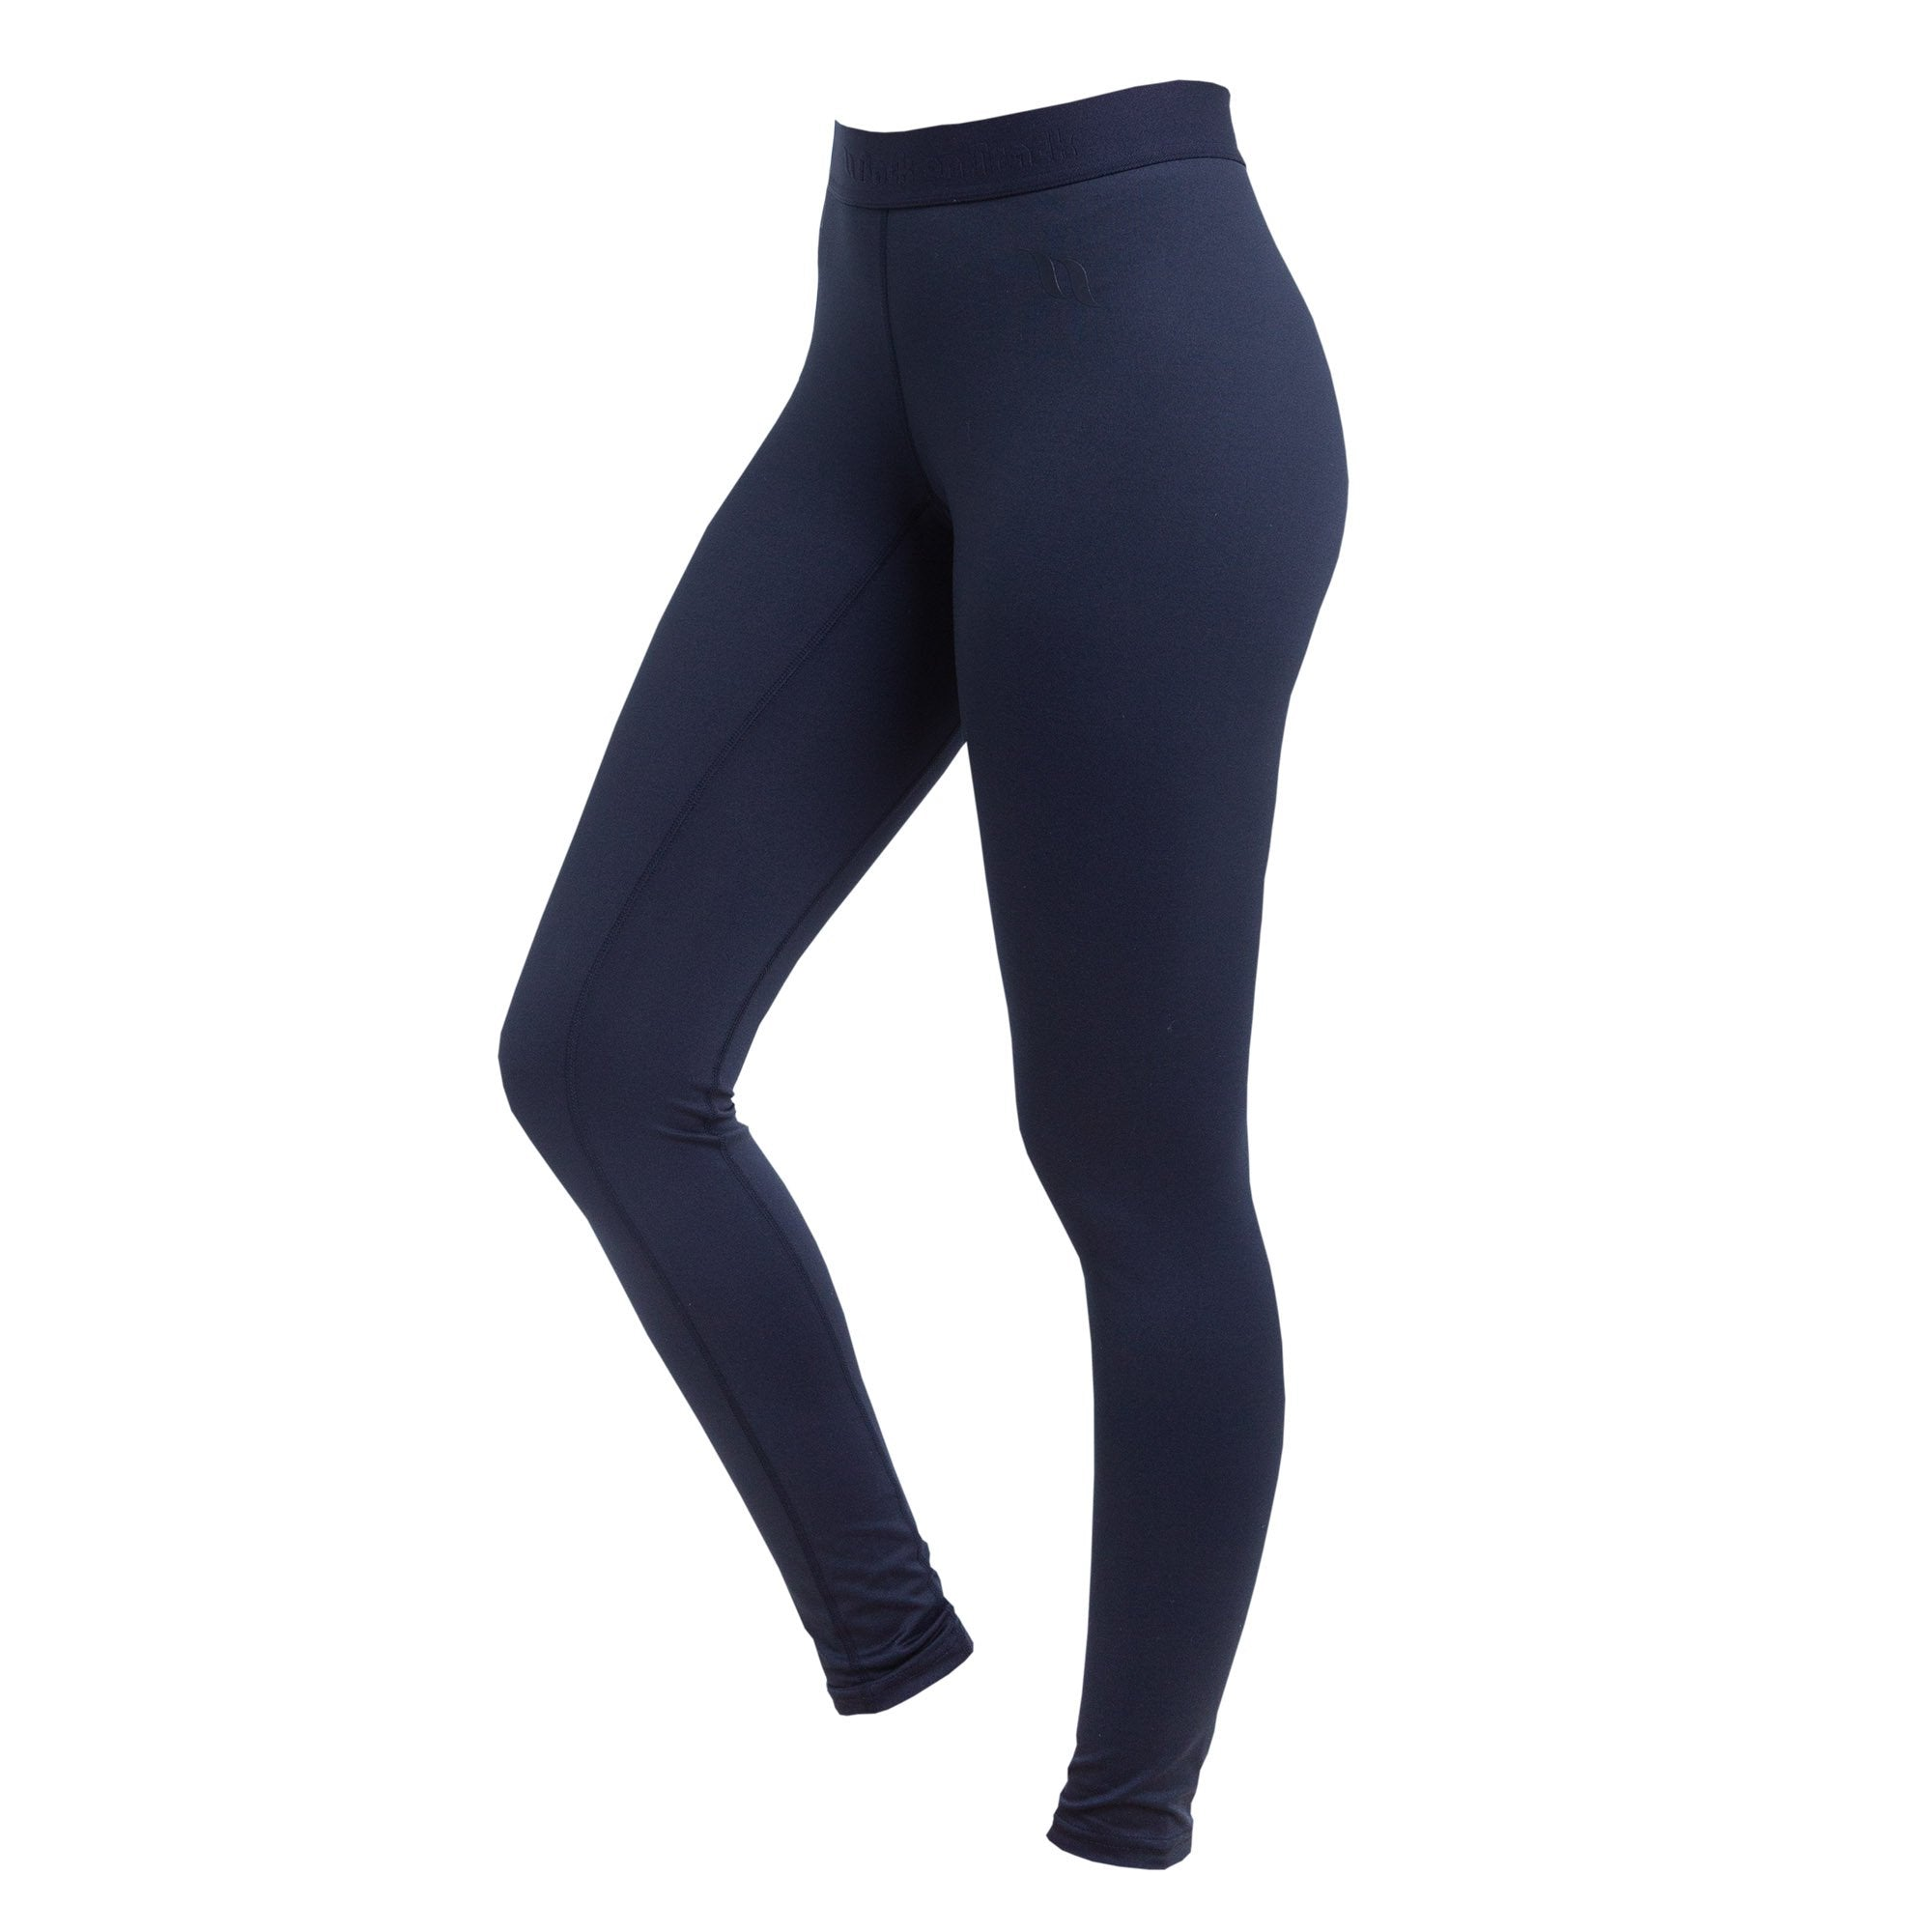 P4G Woman Cate Tights - Back on Track Sverige (5300140408987)